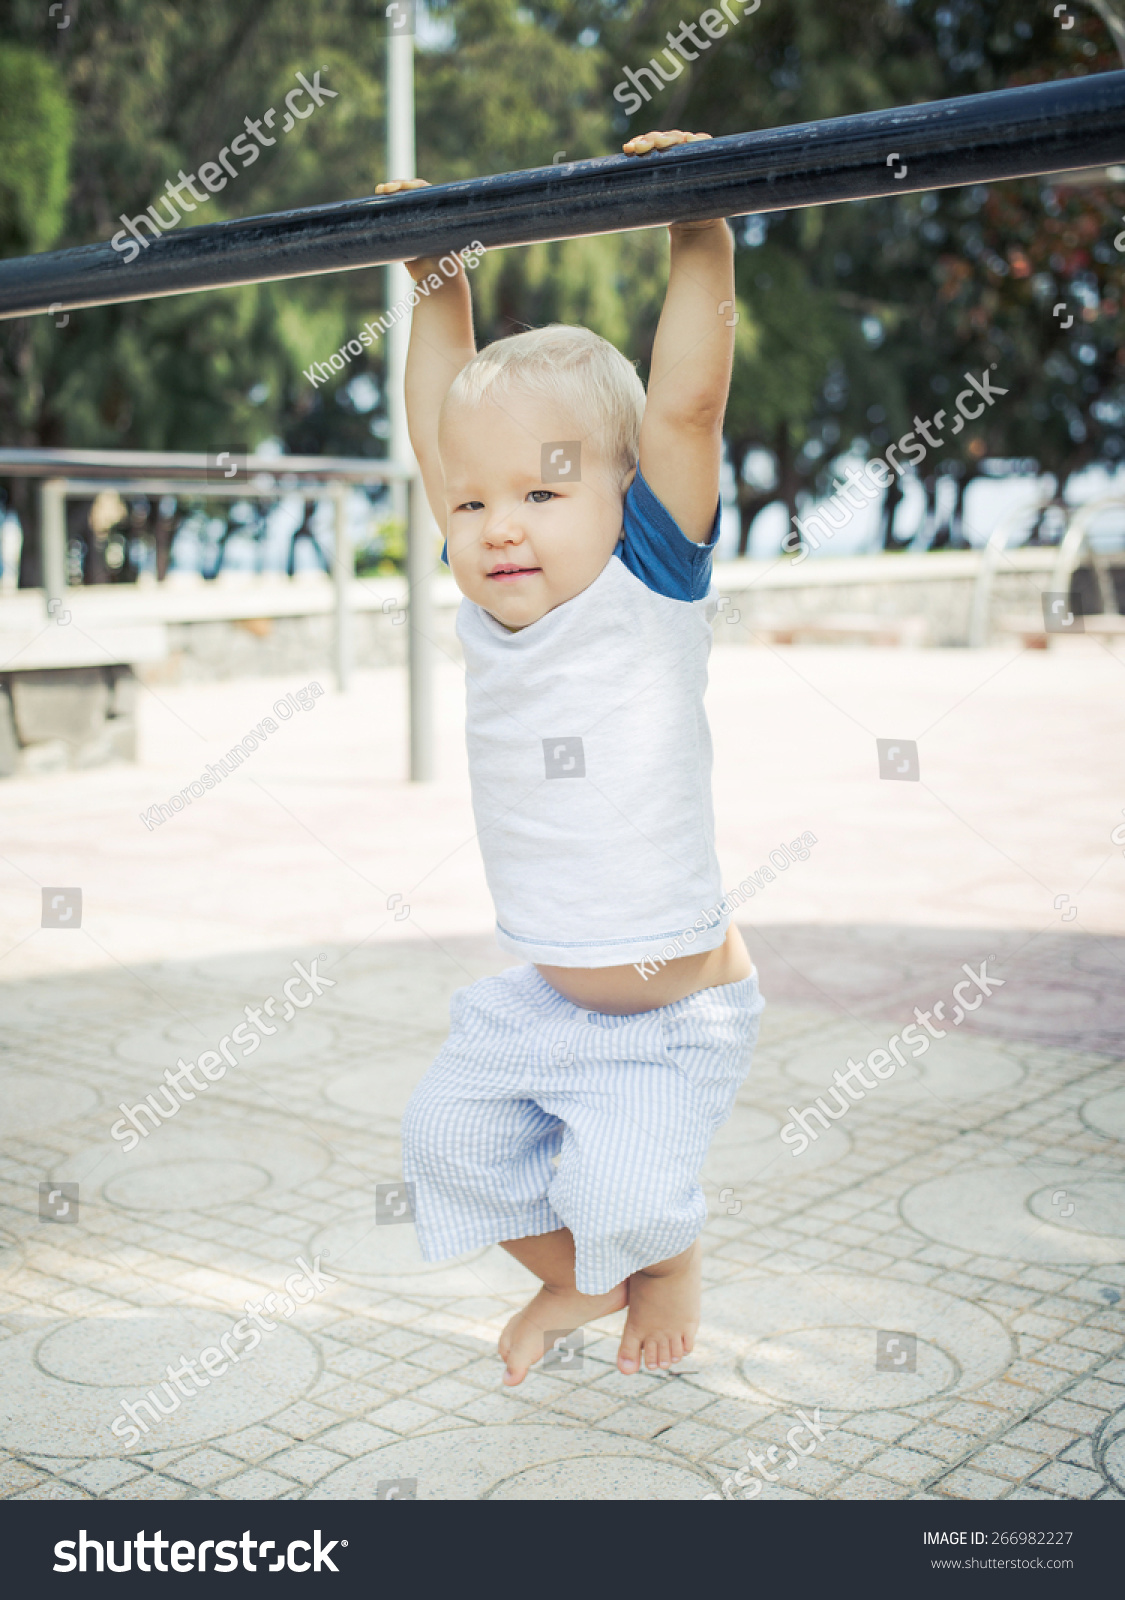 Baby Hanging On A Pull Up Bar Stock Photo 266982227